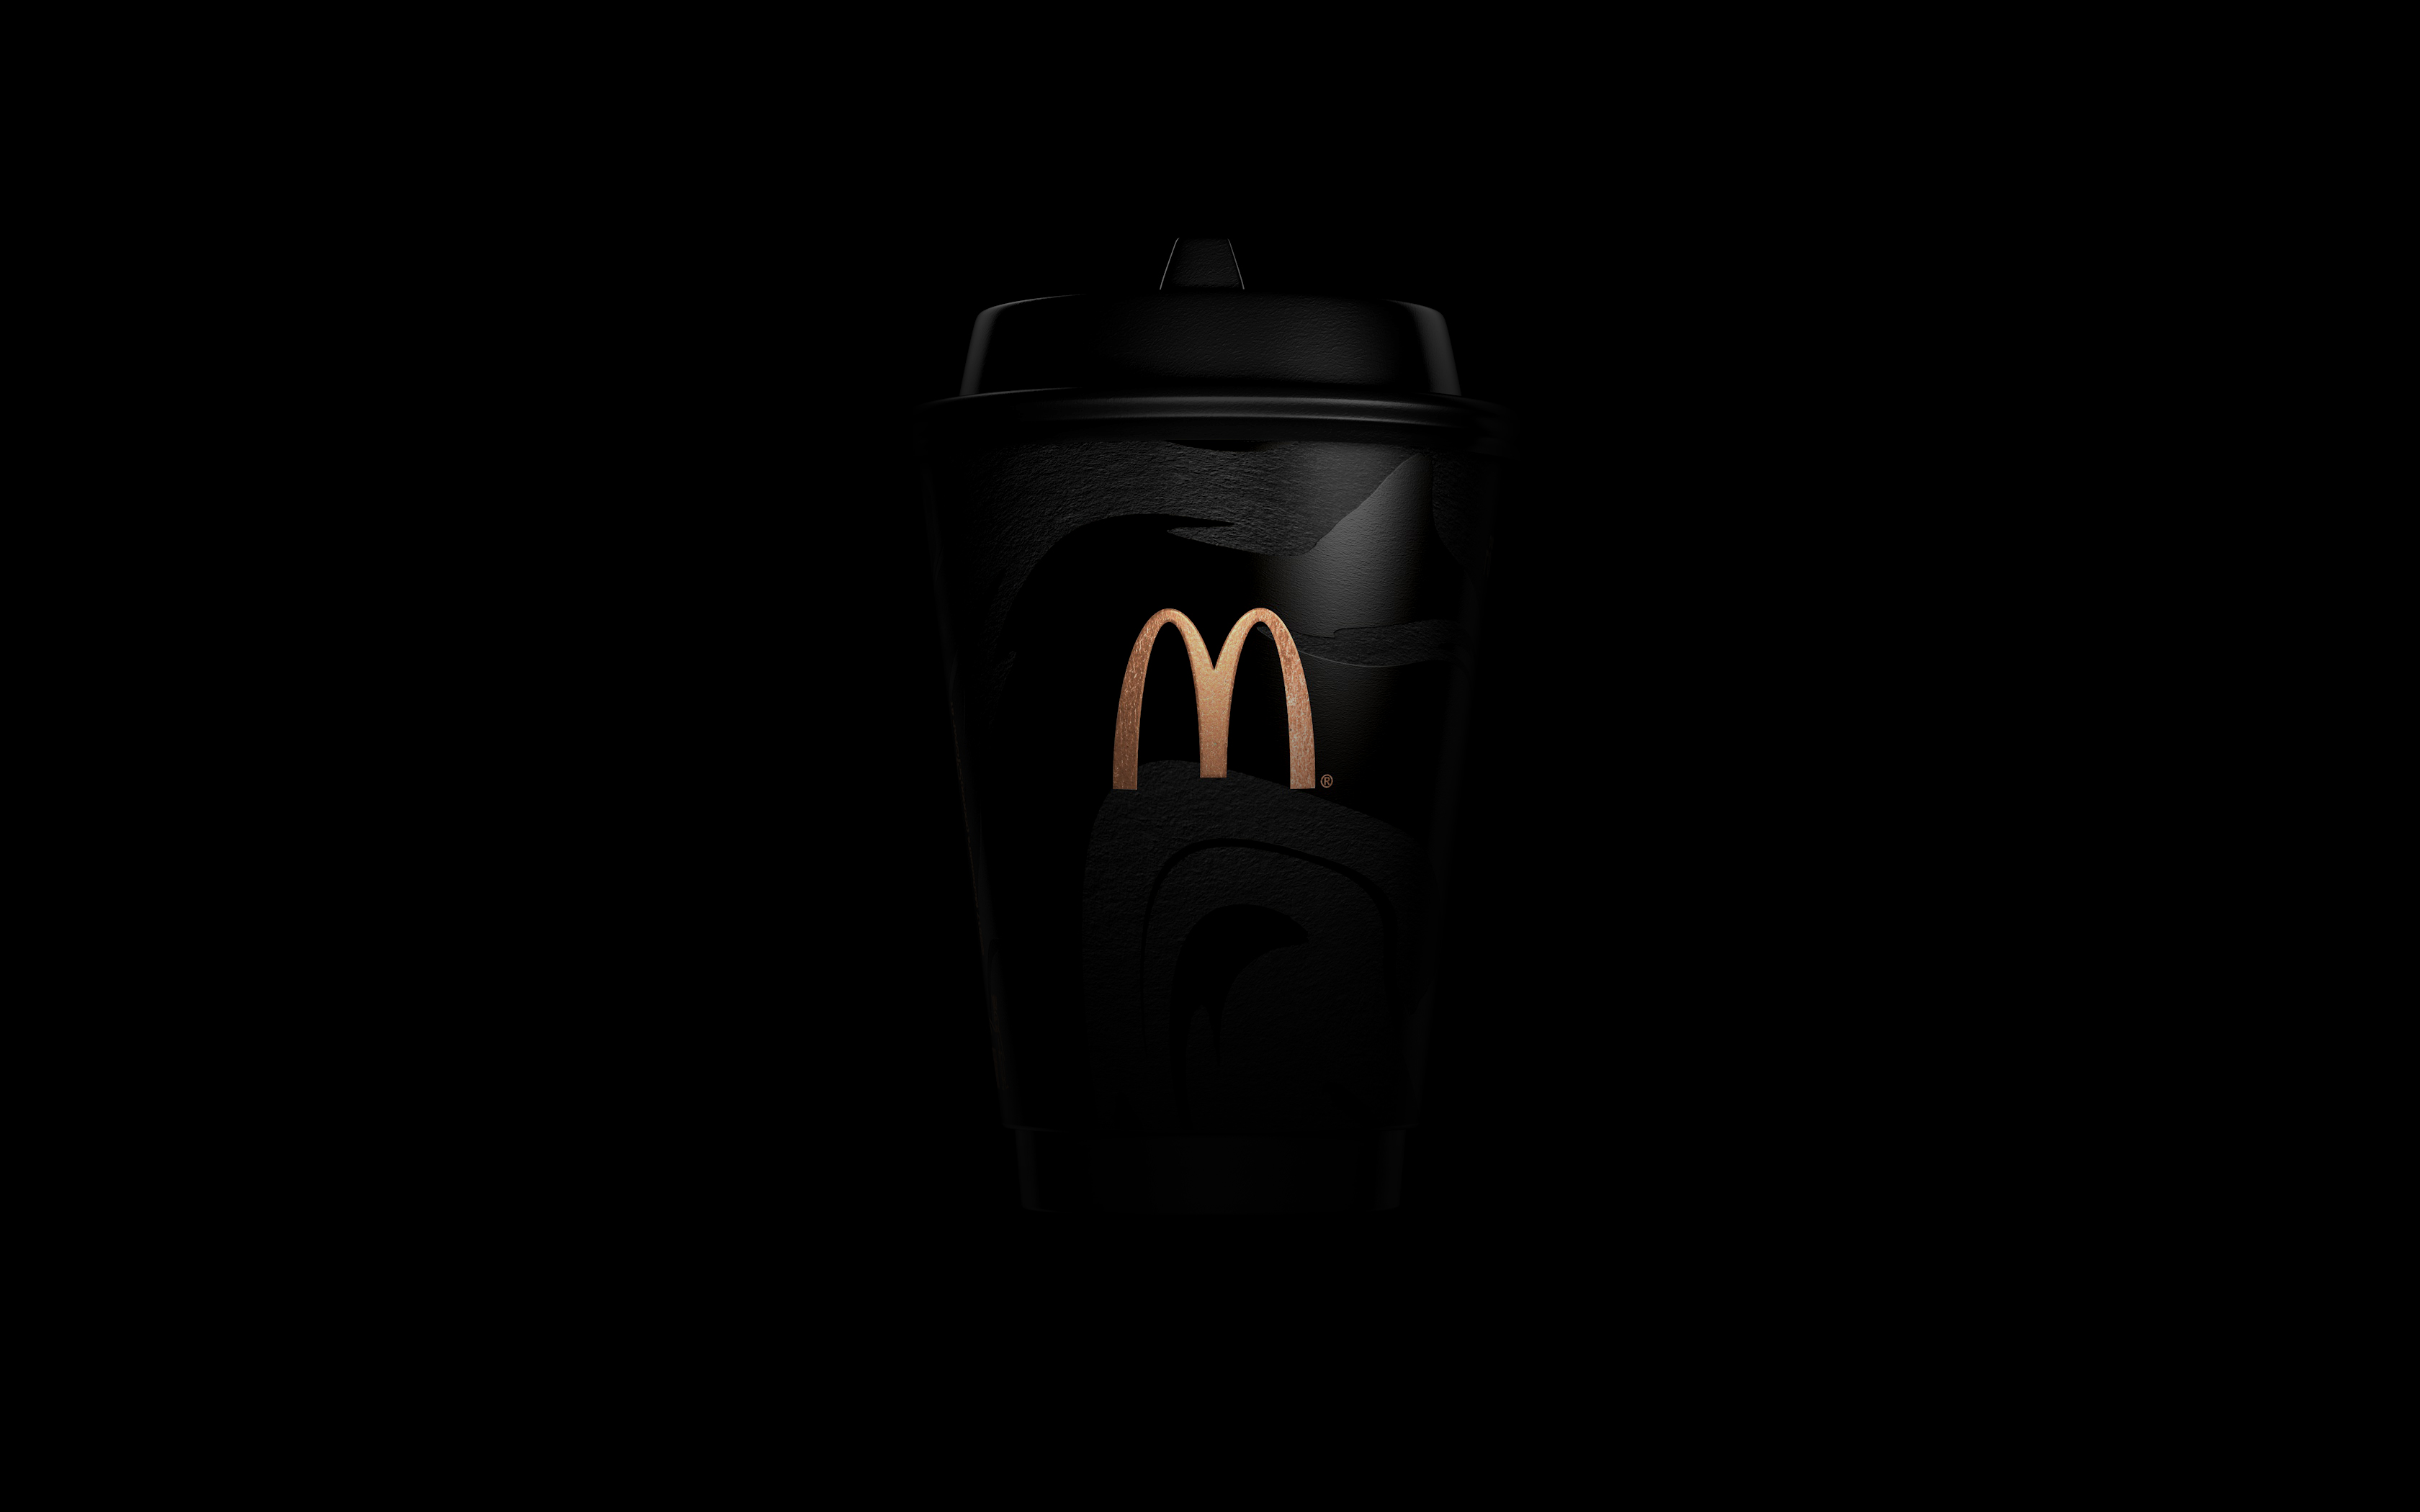 Rebranding of The Famous McDonald's Cups